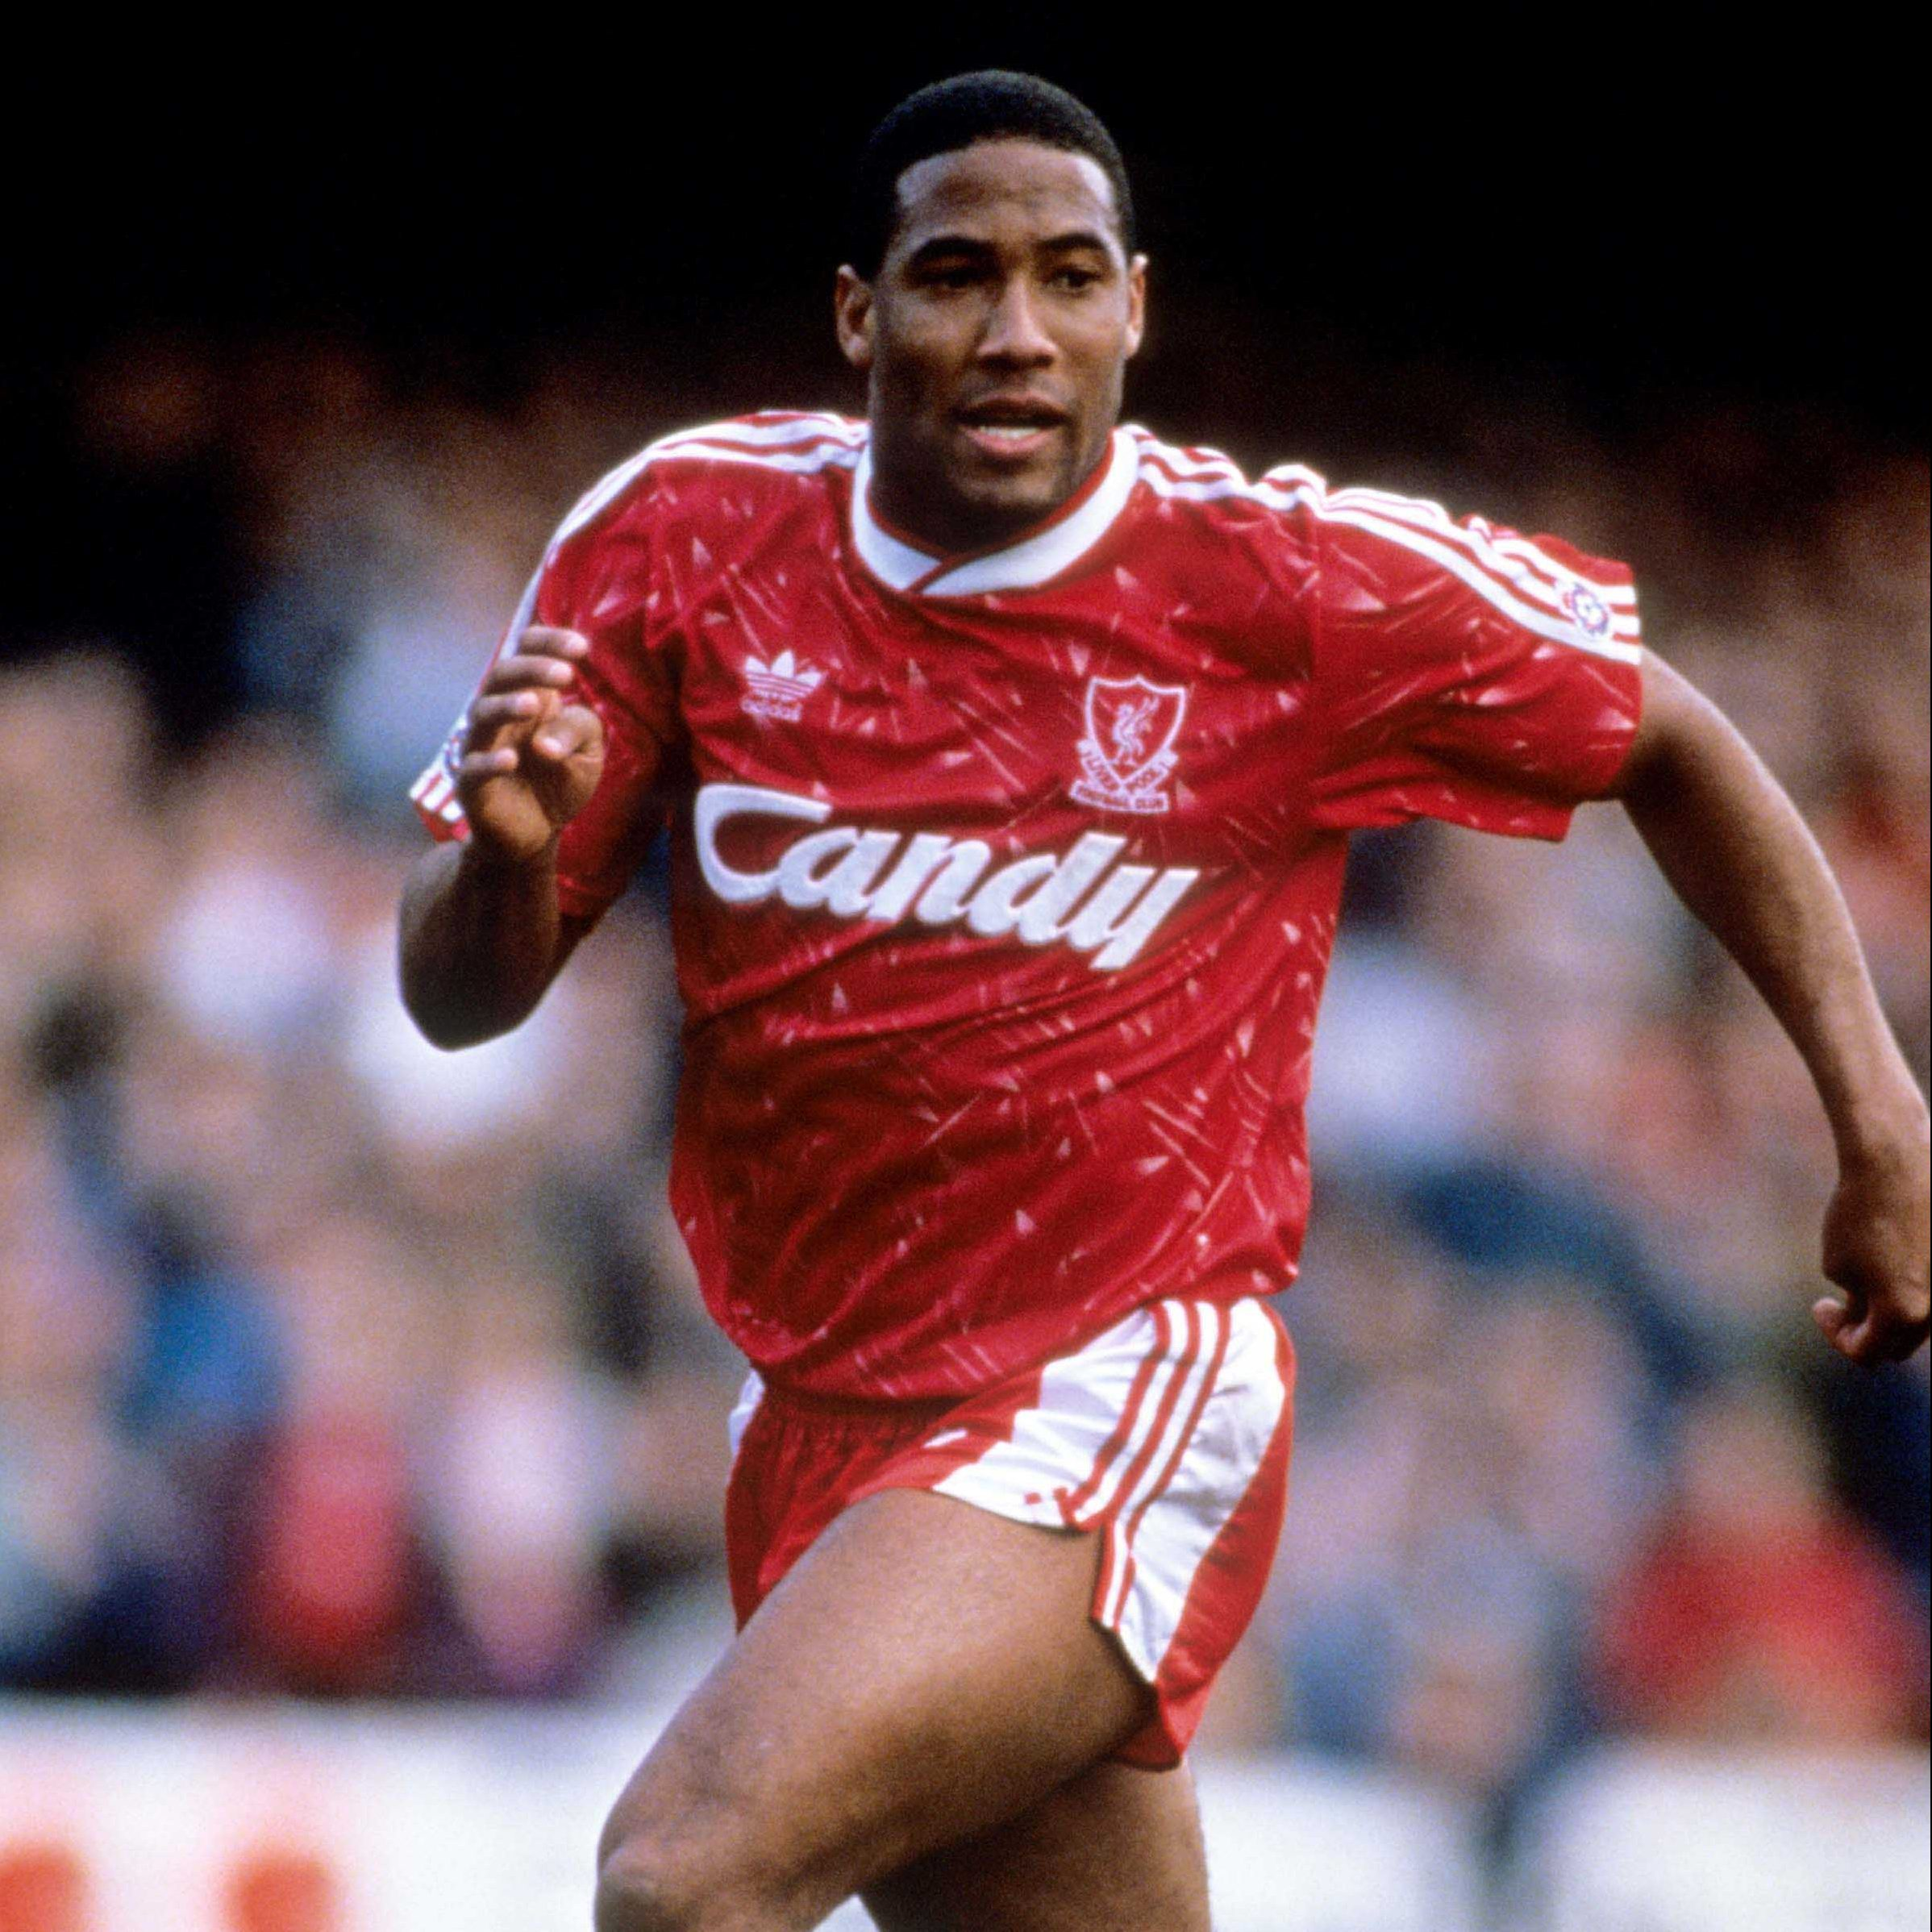 John Barnes Week: The Greatest Player I've Ever Seen At Liverpool